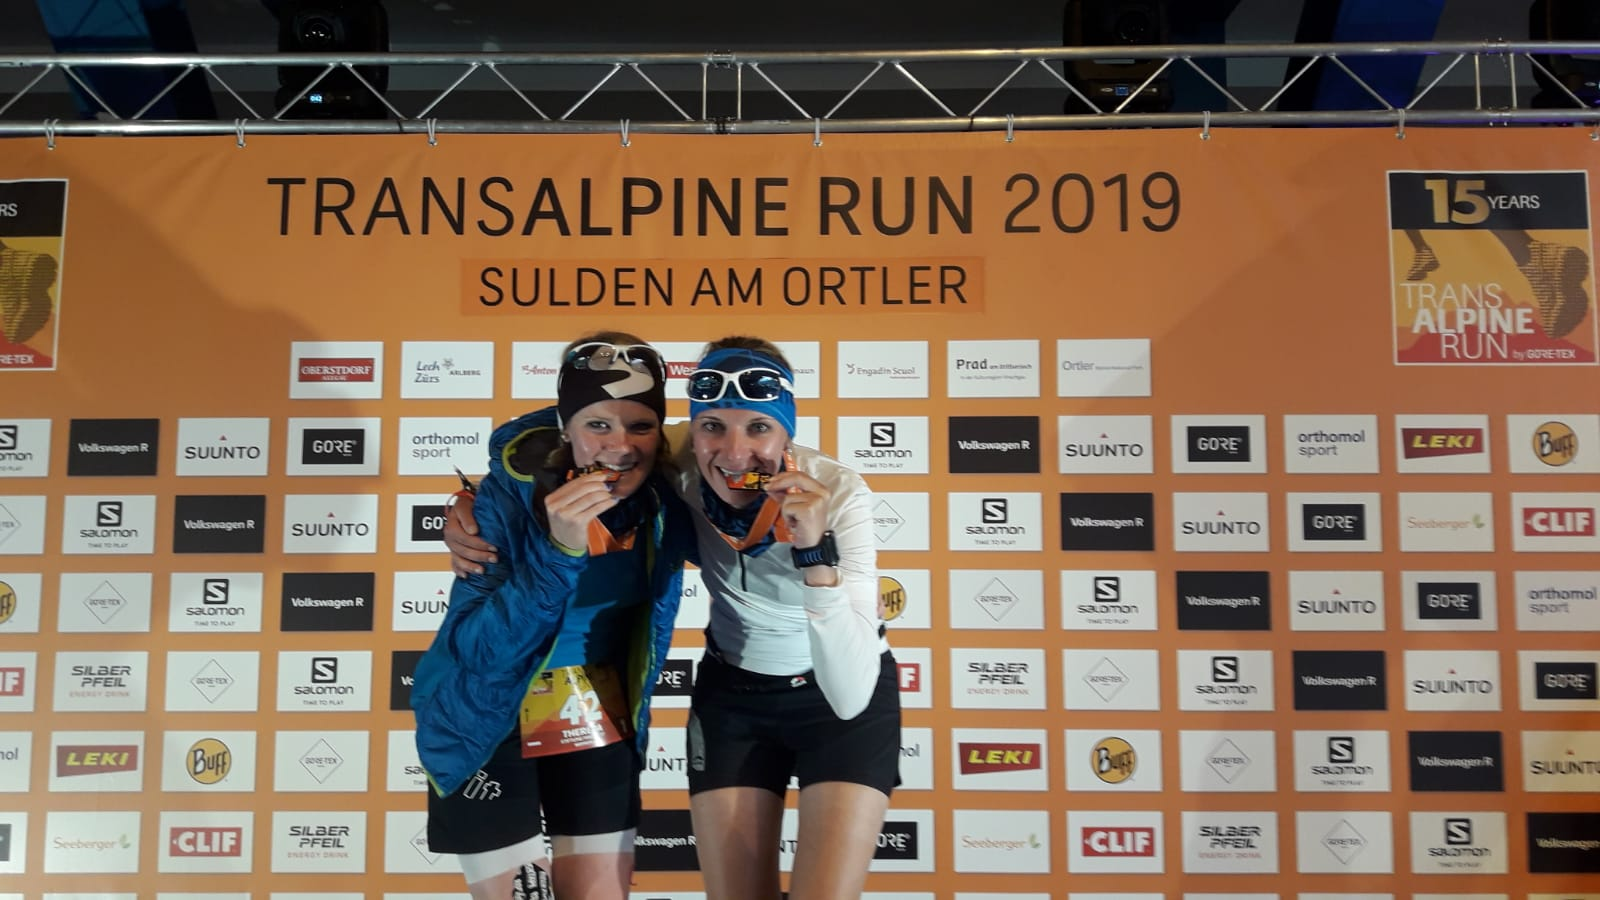 Transalpine Run 2019 - Ziel